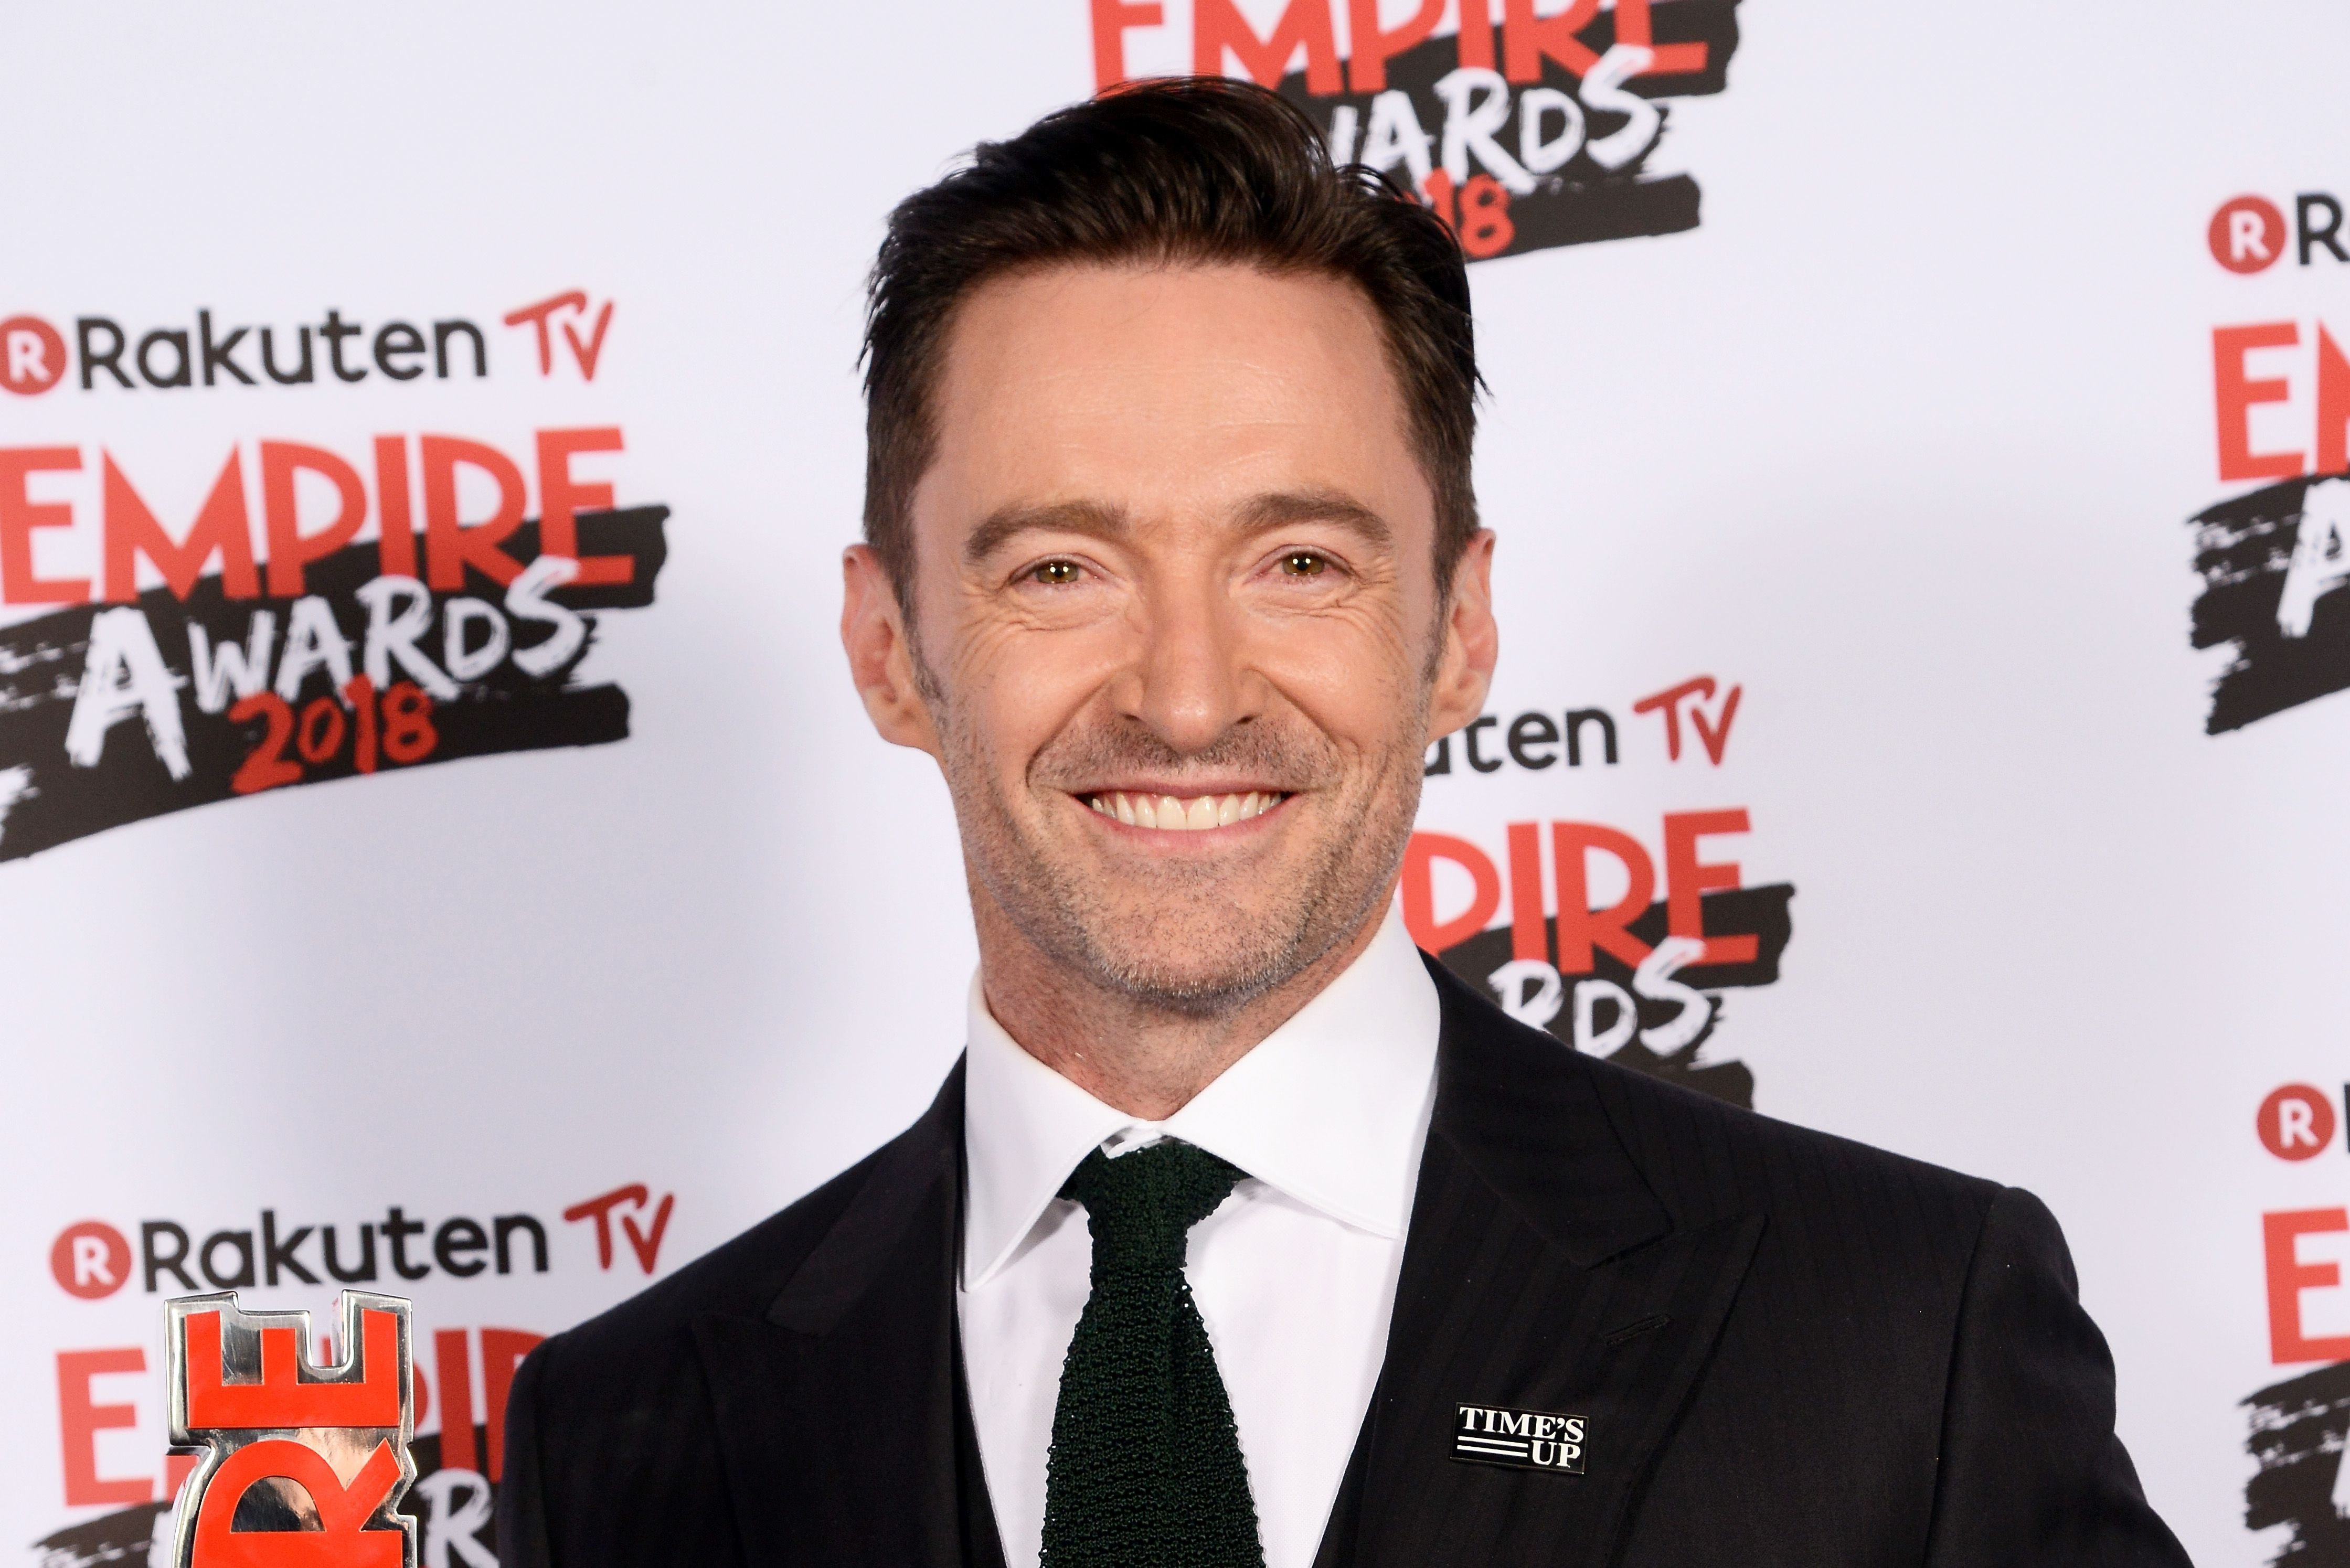 Hugh Jackman at the Rakuten TV EMPIRE Awards 2018 at The Roundhouse on March 18, 2018d. | Photo: Getty Images